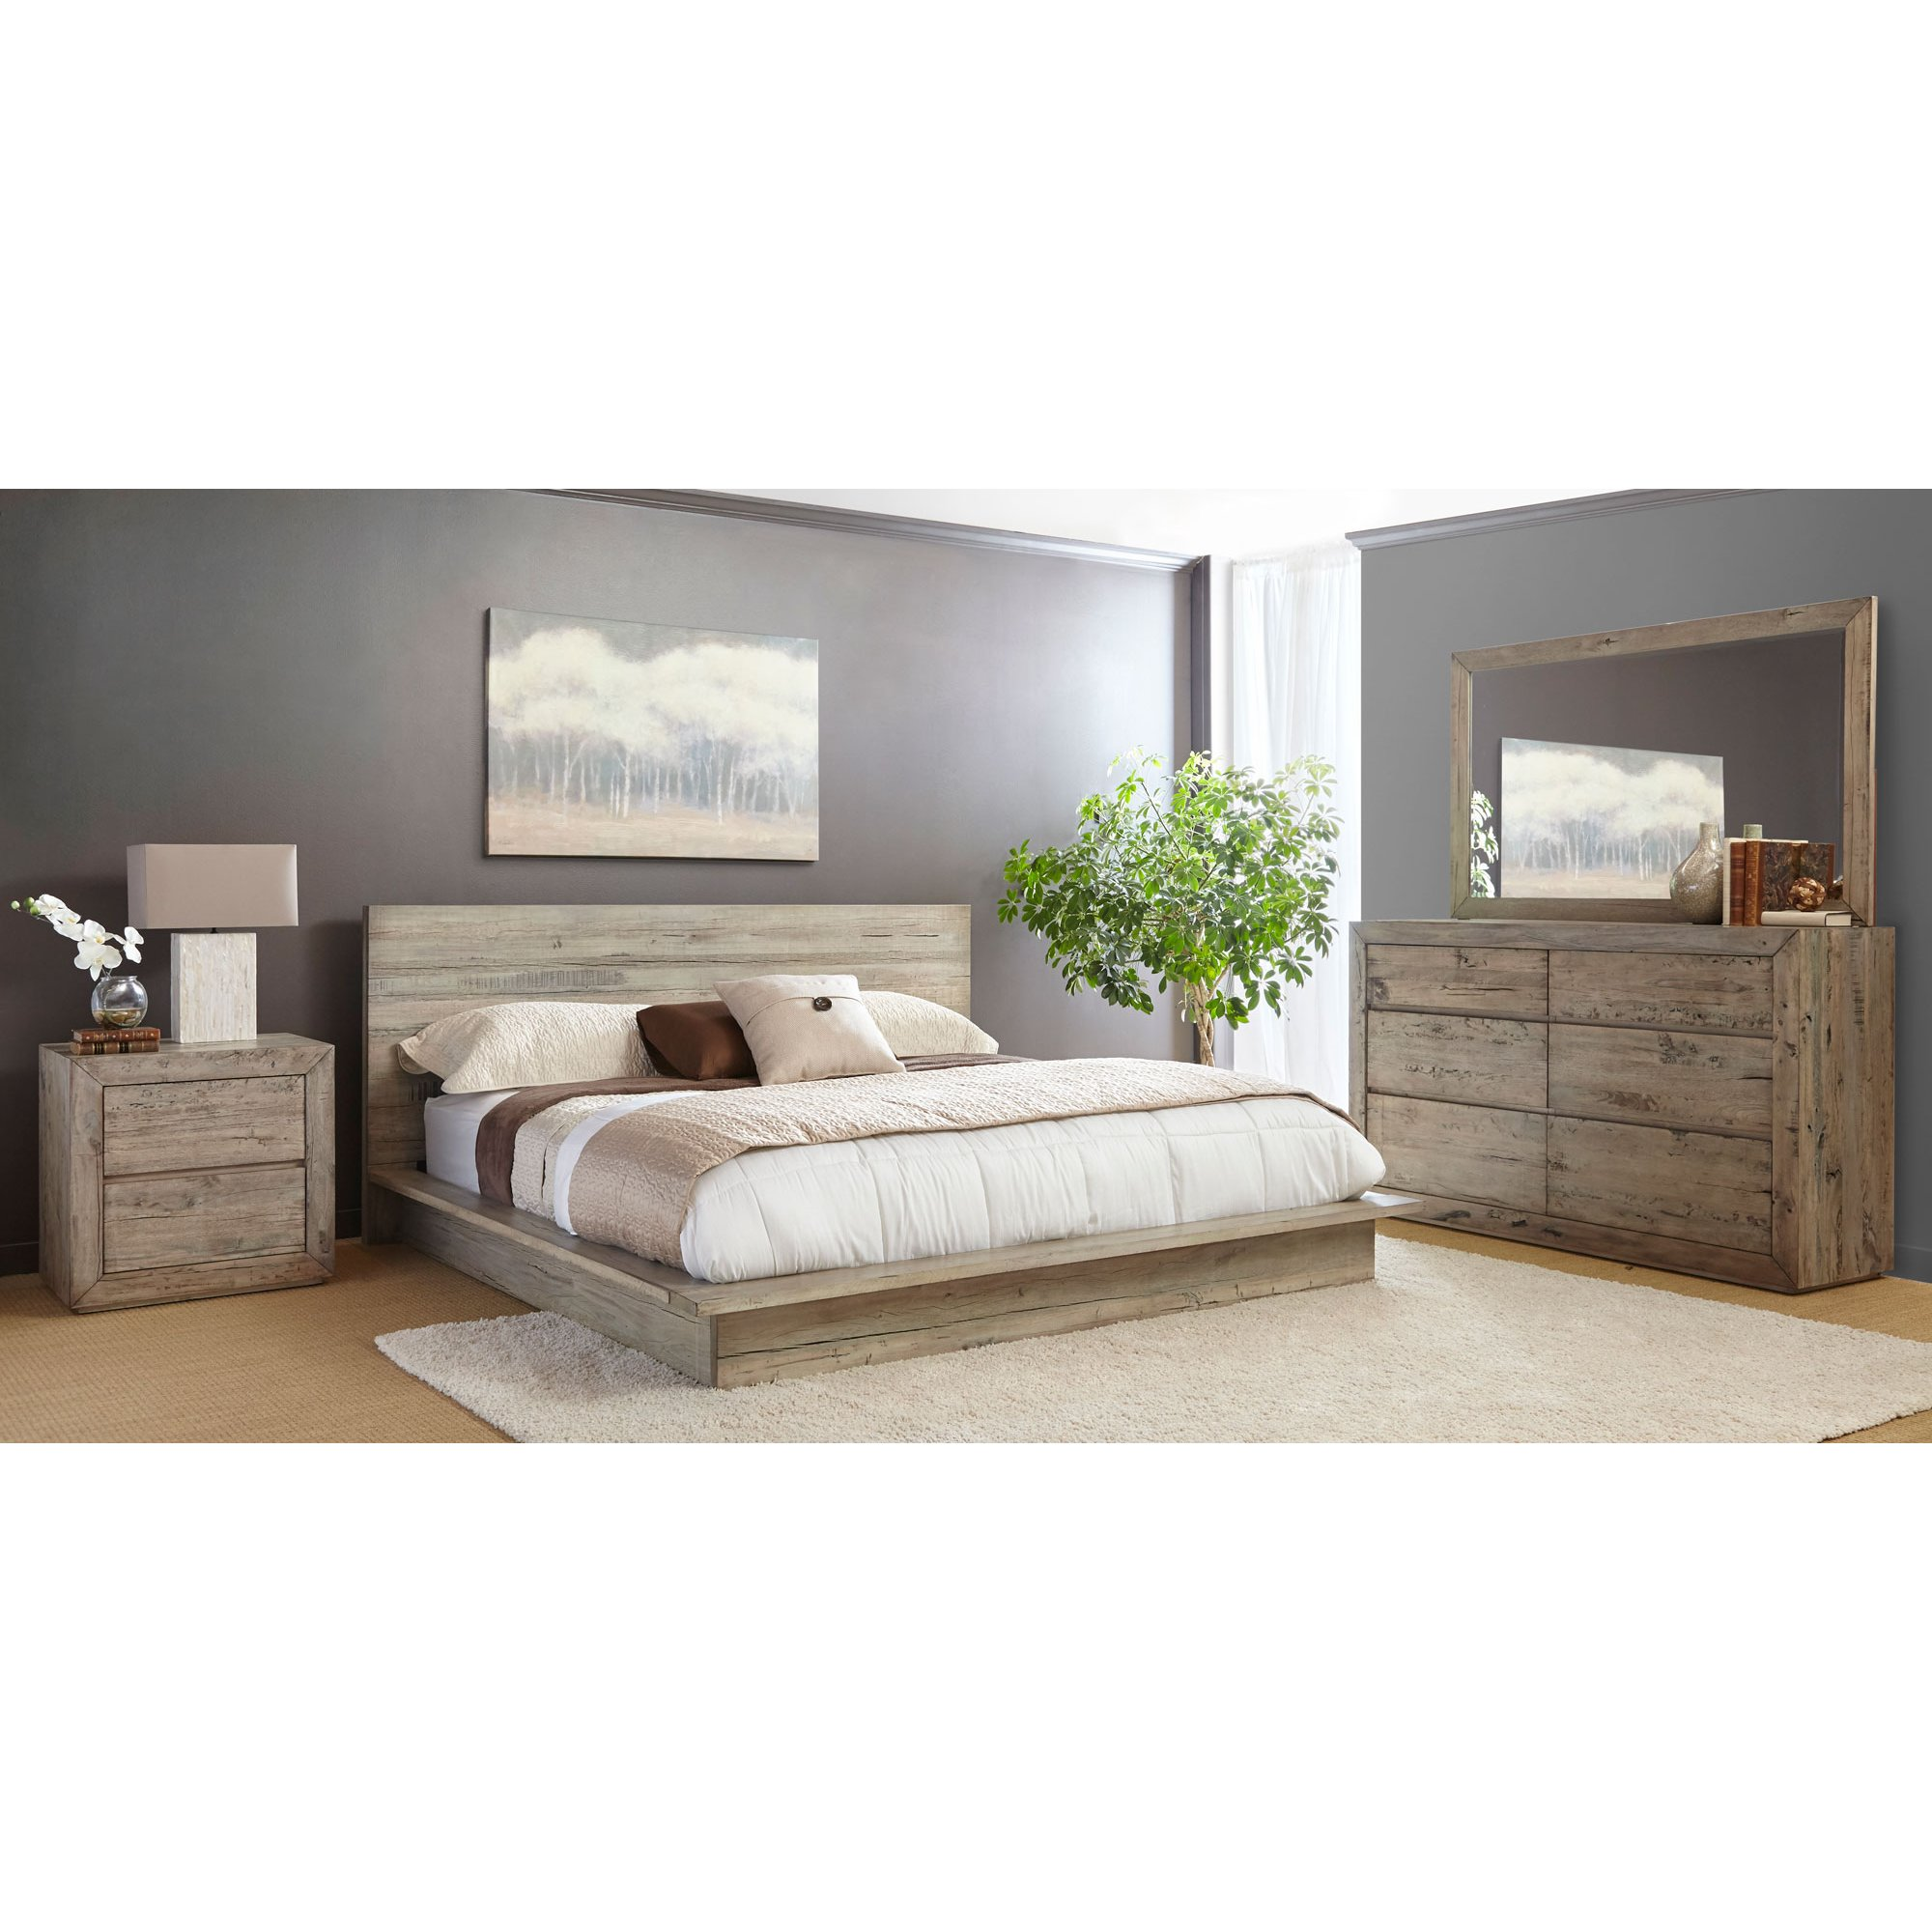 White Washed Modern Rustic 6 Piece Queen Bedroom Set   Renewal | RC Willey  Furniture Store